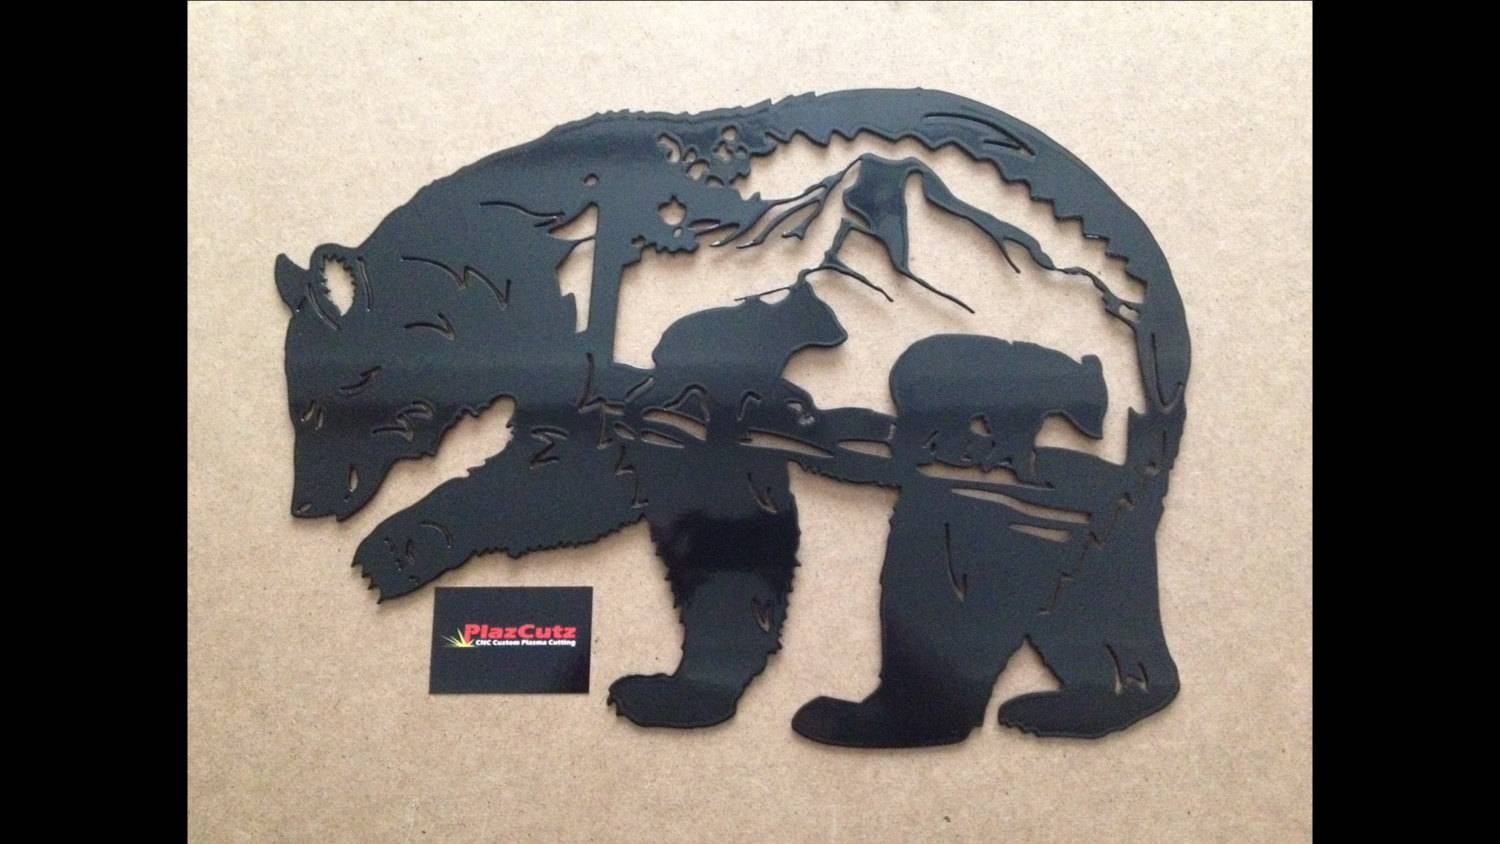 Bear Scene Metal Wall Art Plaque Cnc Plasma Cut And Powder With Most Current Plasma Cut Metal Wall Art (View 2 of 20)